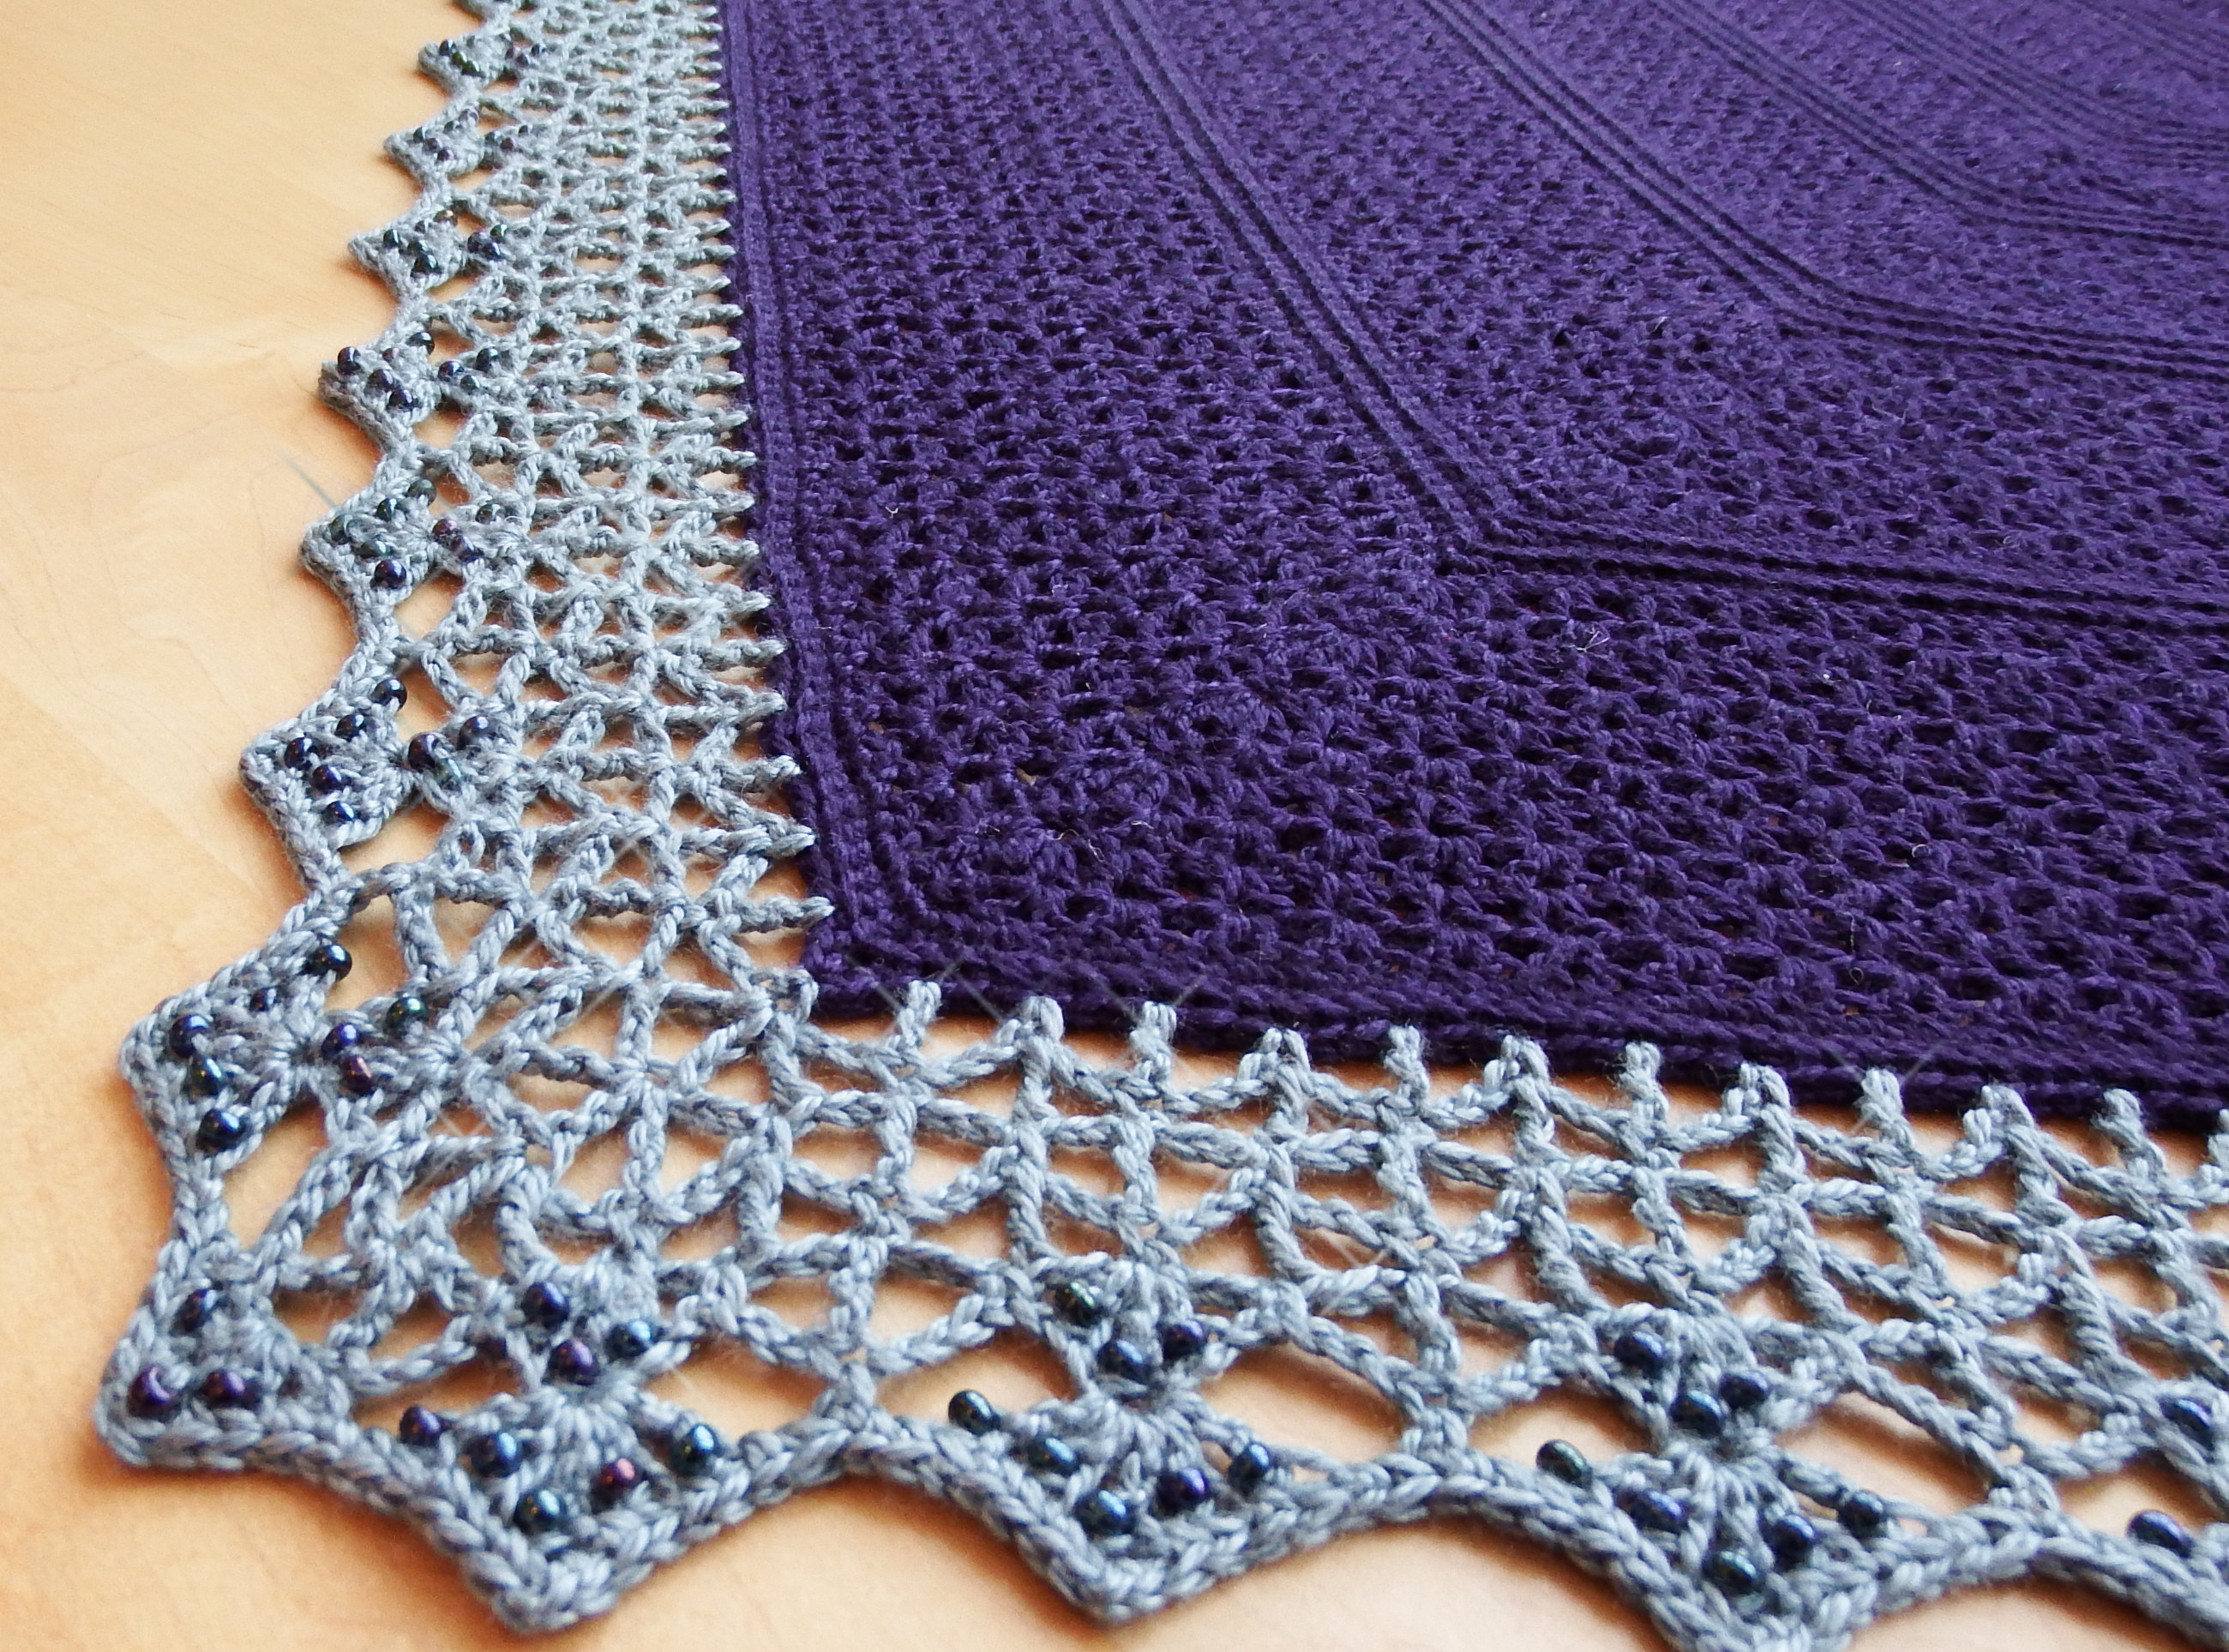 Crochet Lace Pattern Awesome Crochet Lace Patterns Free Edging Pakbit for Of Gorgeous 50 Photos Crochet Lace Pattern